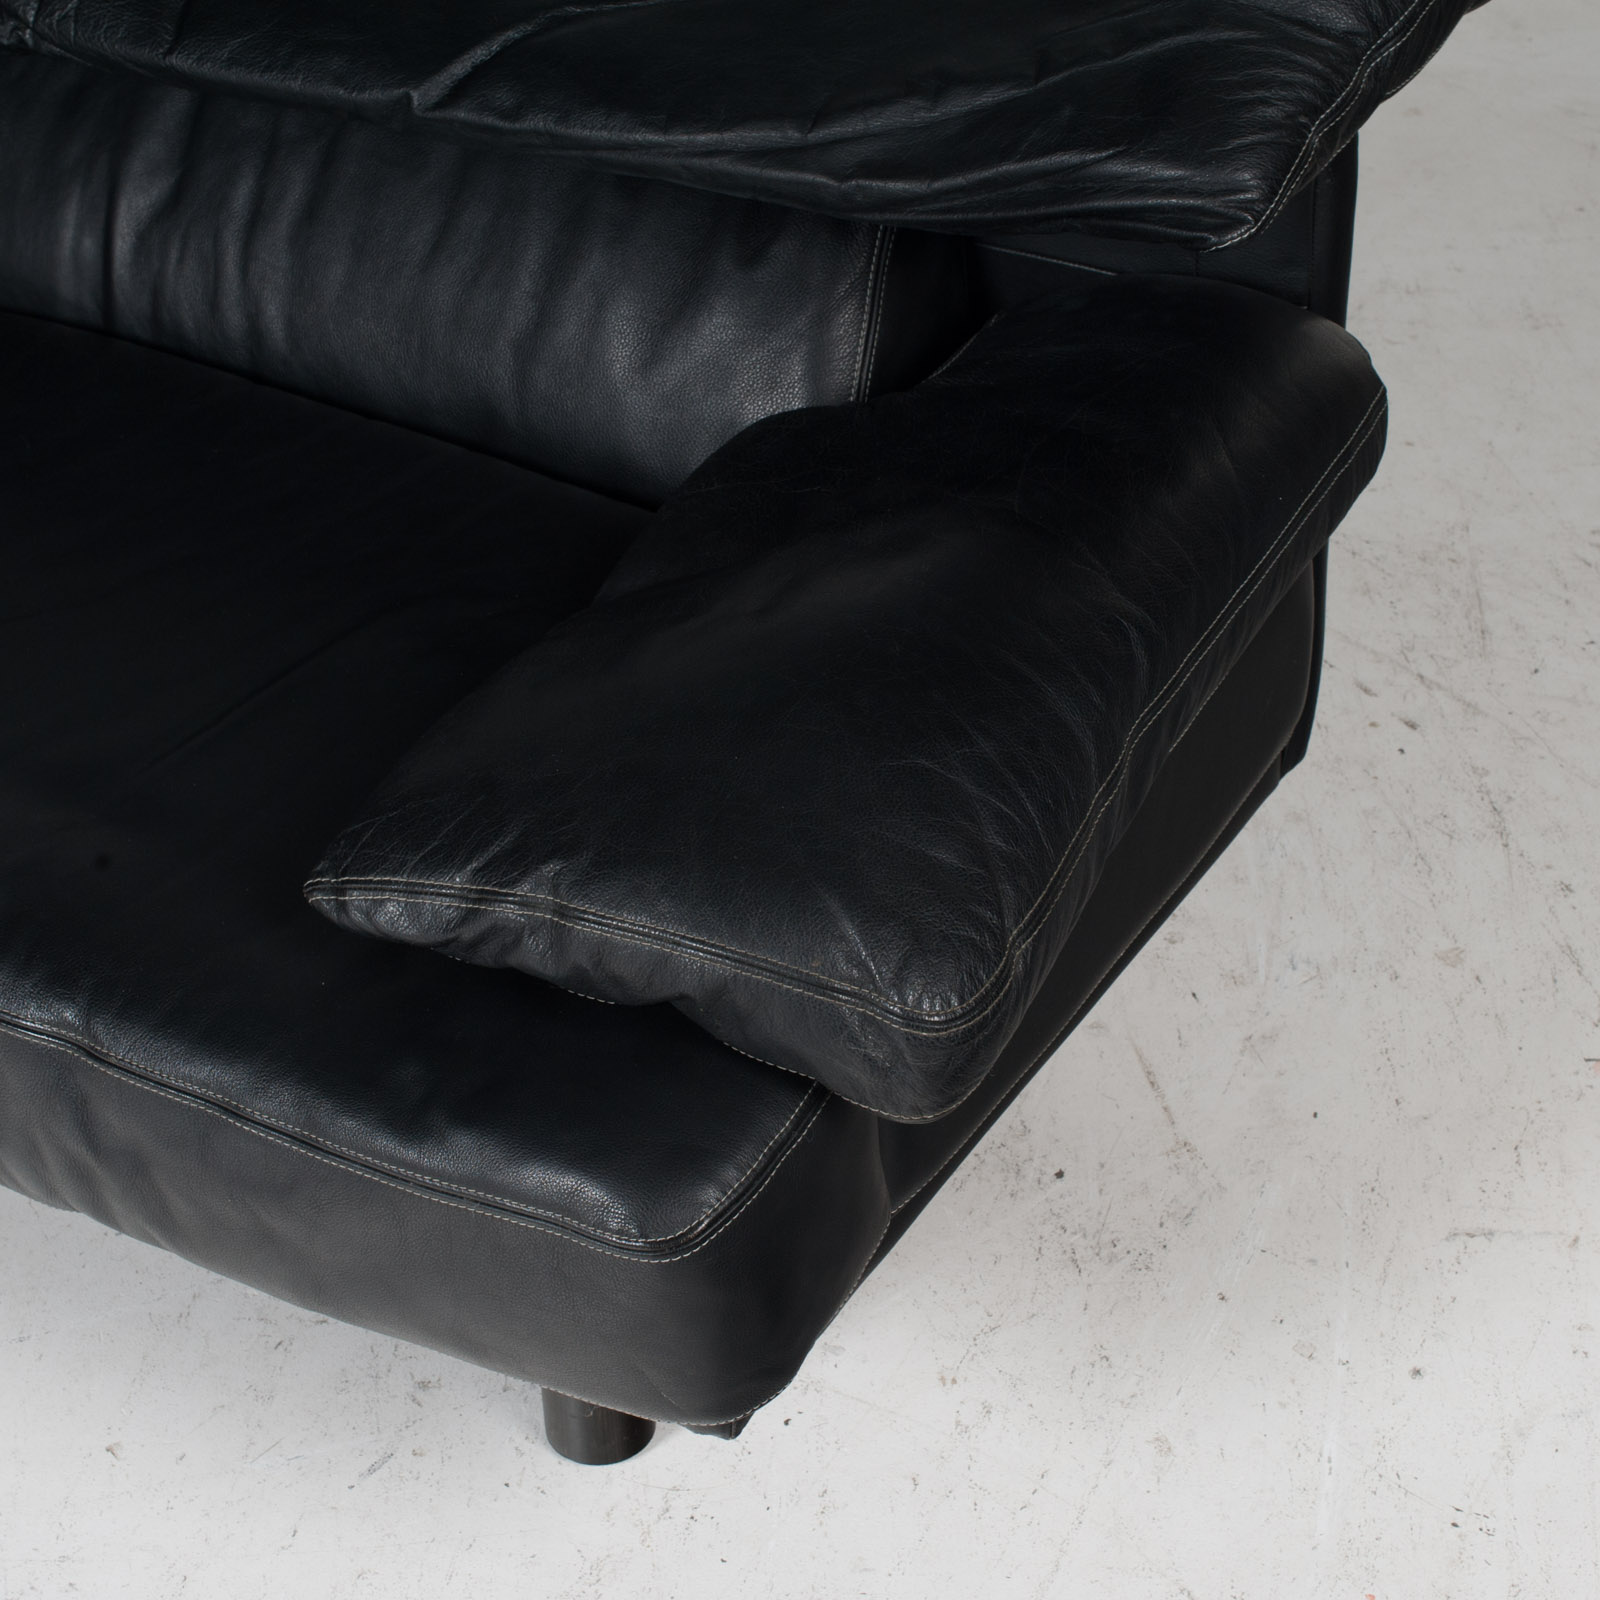 2 Seat Sofa In The Style Of Alanda By Paolo Piva For B&b Italia In Black Leather, 1980s, Italy It 11